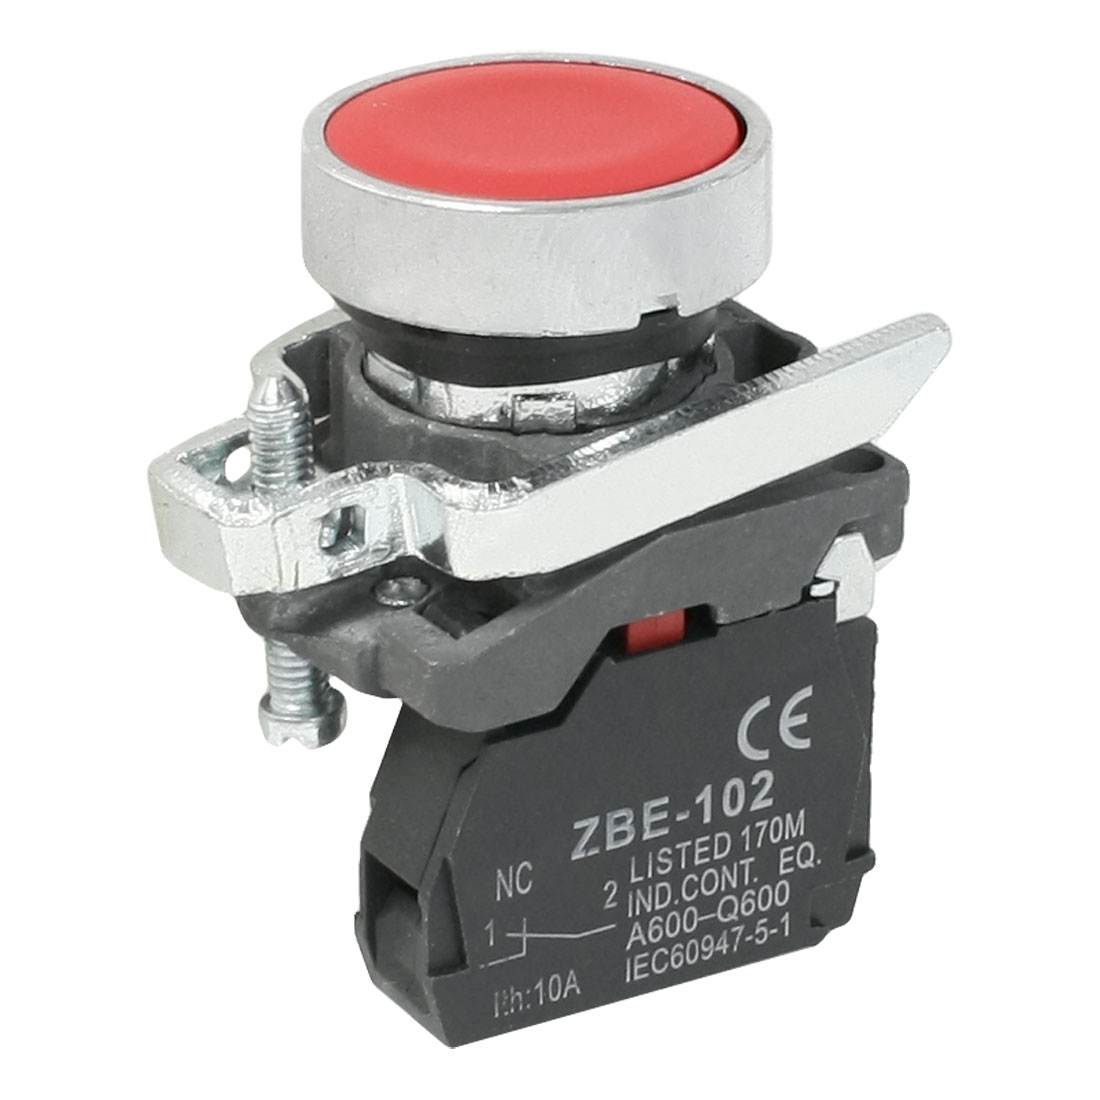 Red Cap 1NC 2-Terminal Button Switch 6A AC 240V ZBE-102 SPST